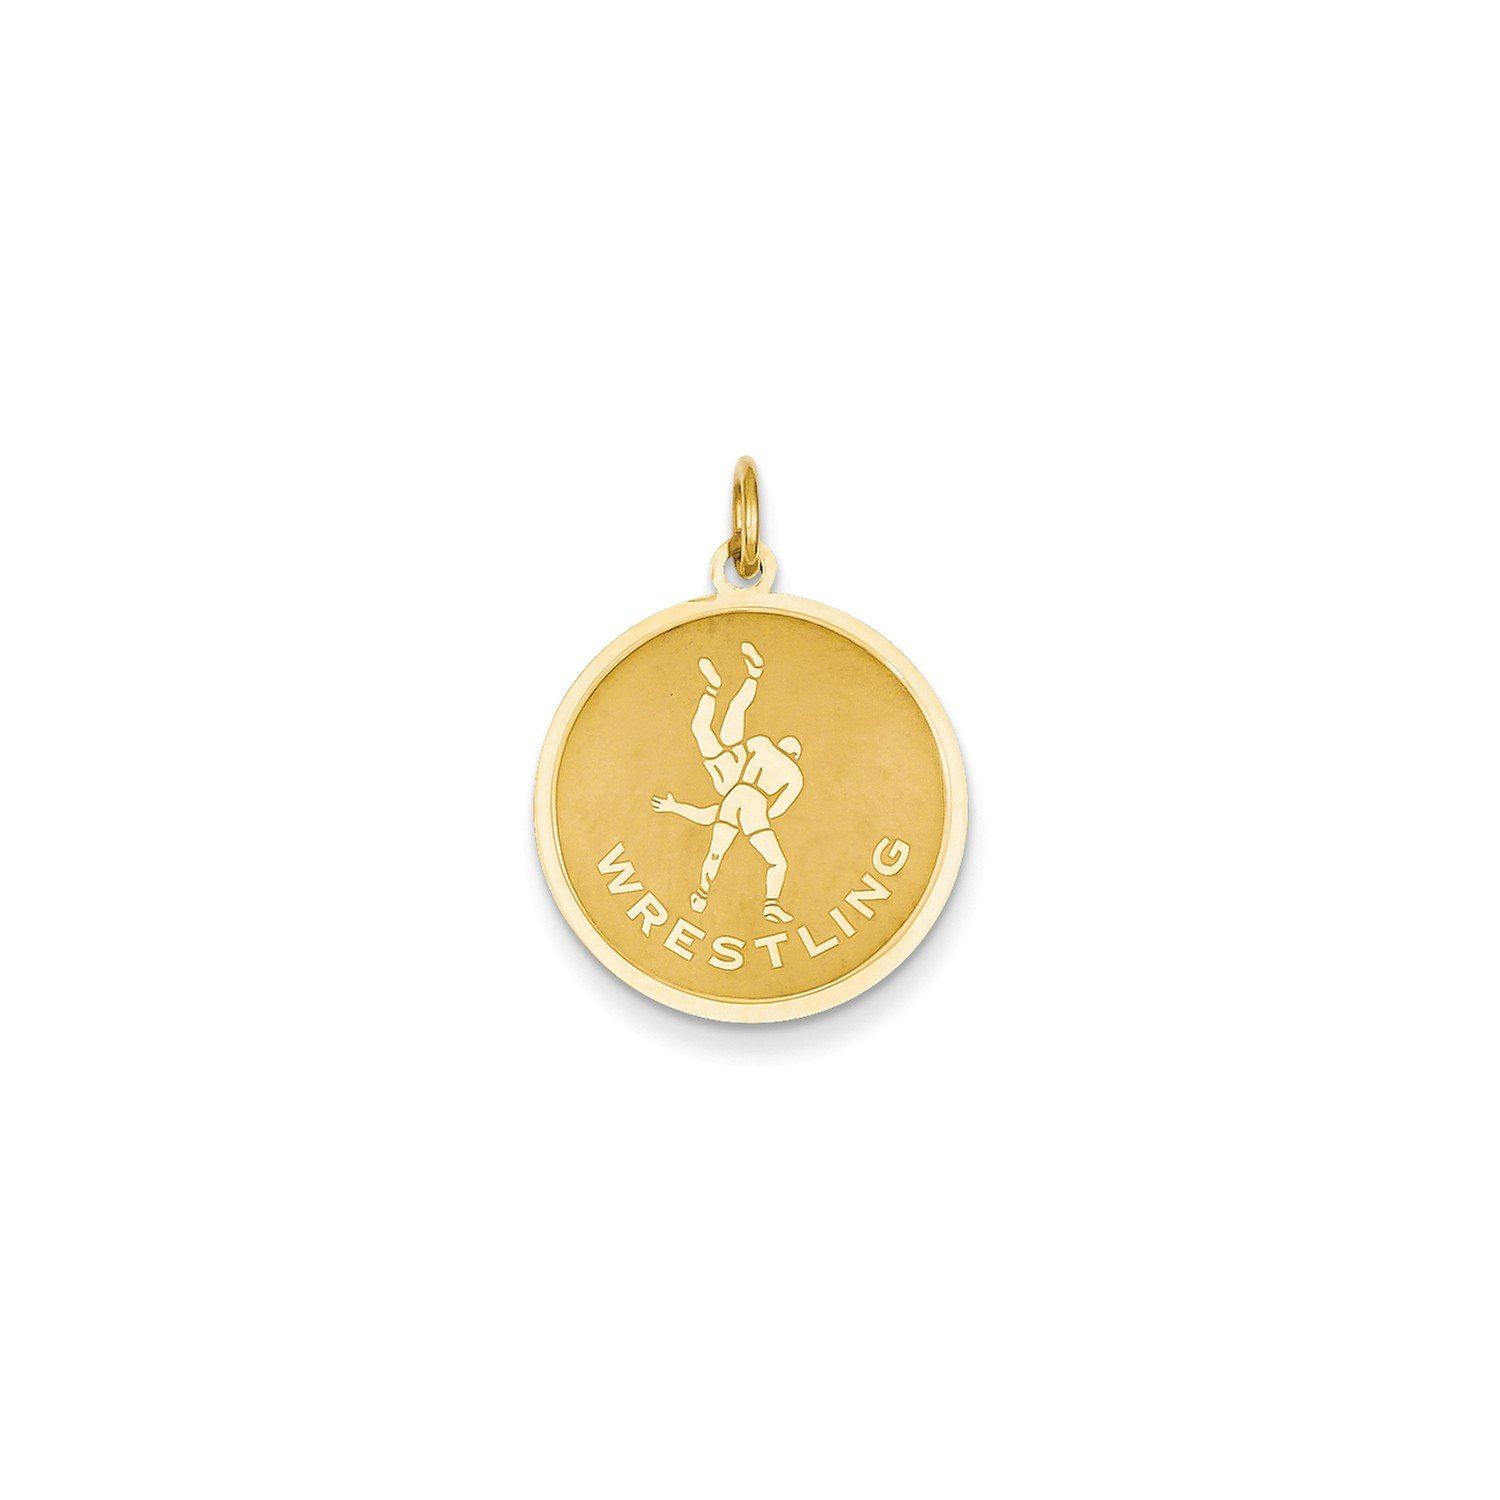 Roy Rose Jewelry 14K Yellow Gold Wrestling Charm by Roy Rose Jewelry